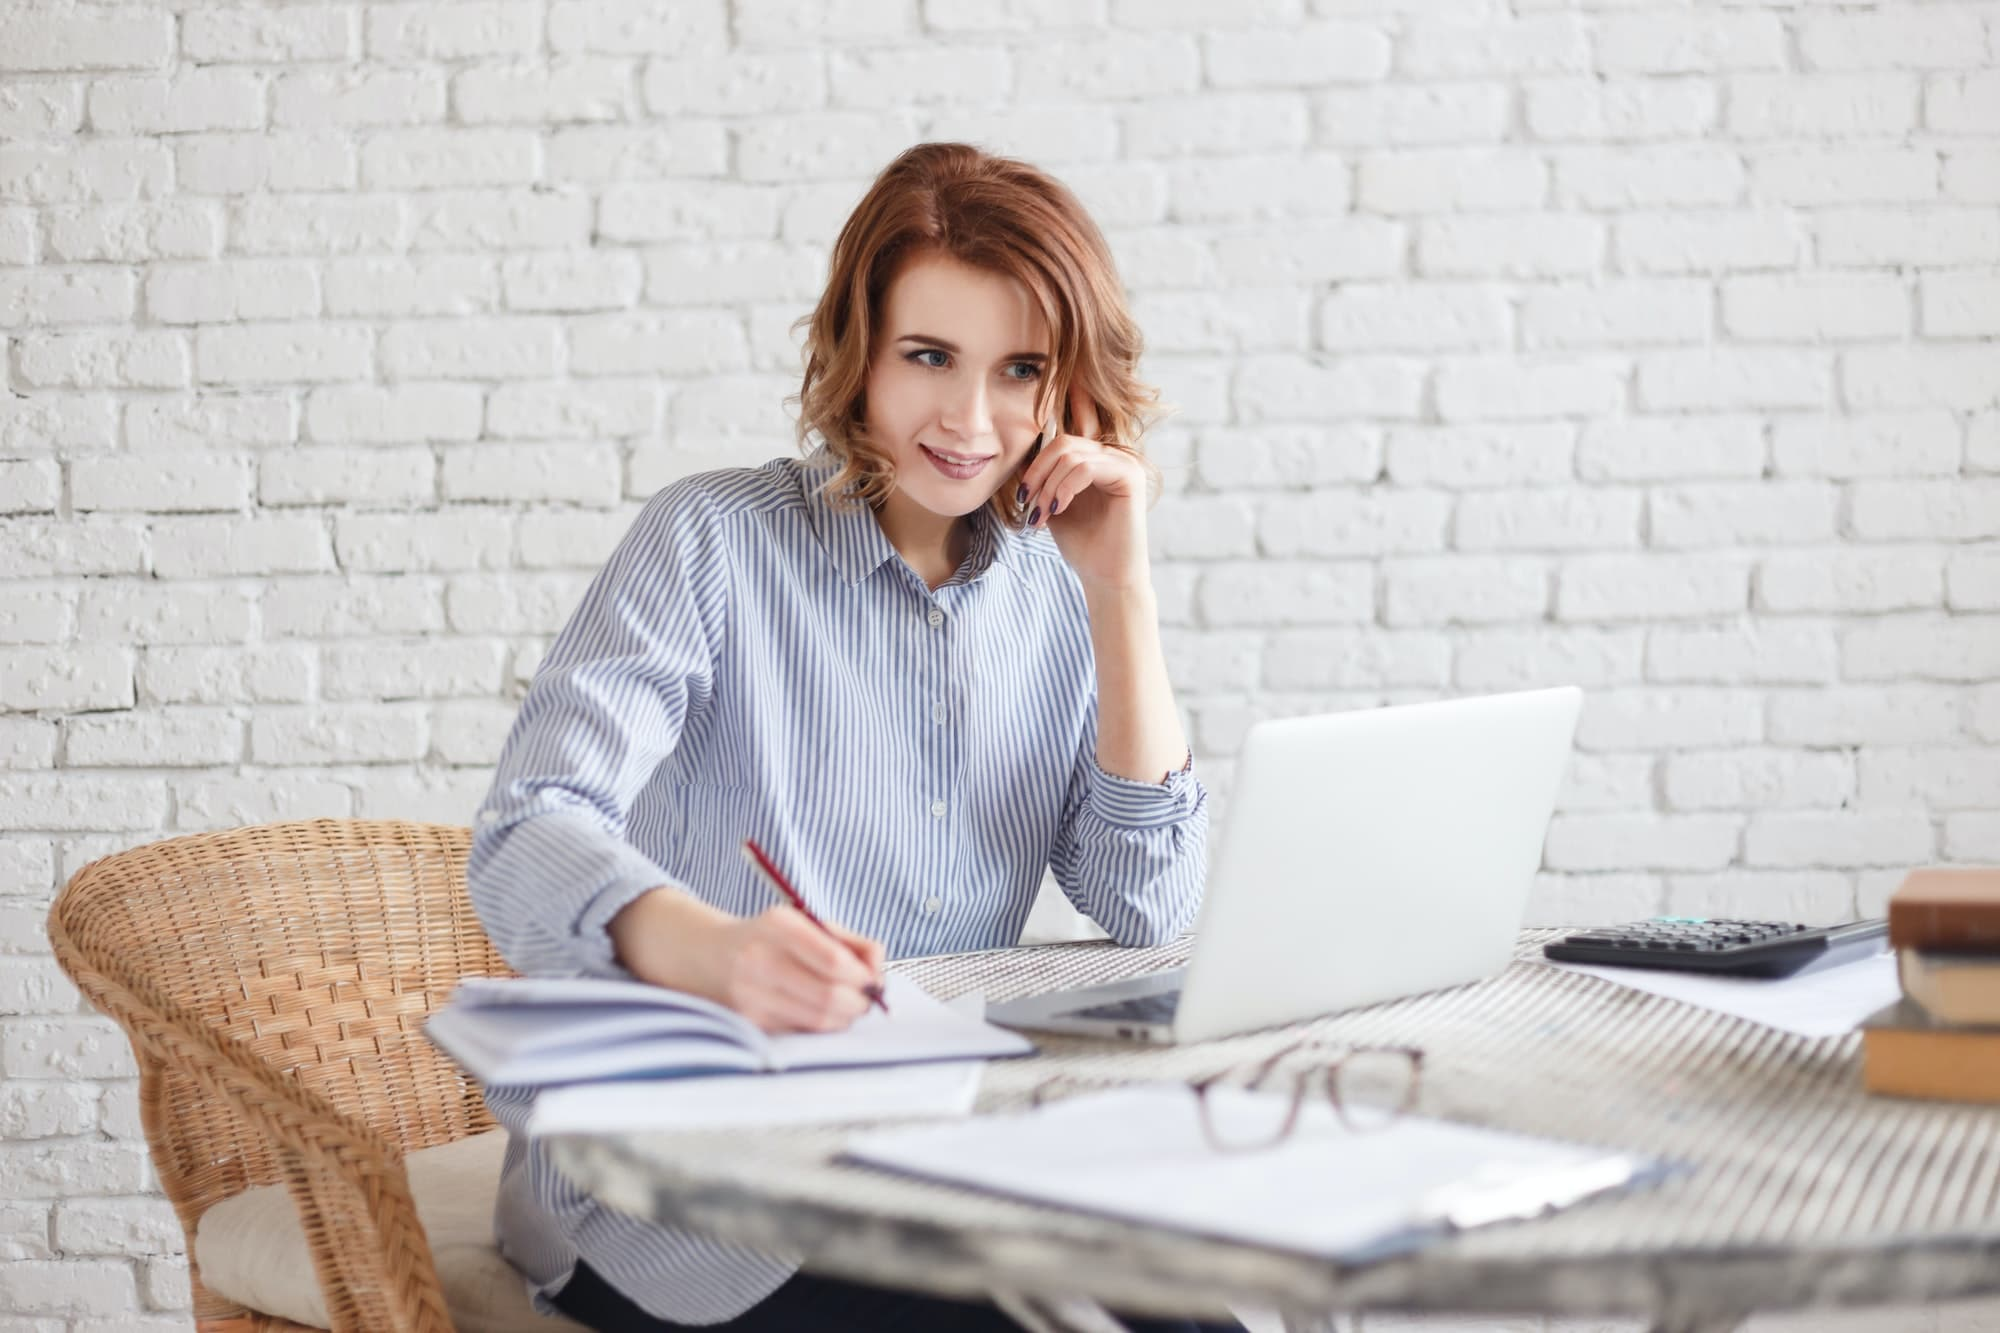 Happy smiling woman freelancer writes notes in a diary sitting in a office or at home.